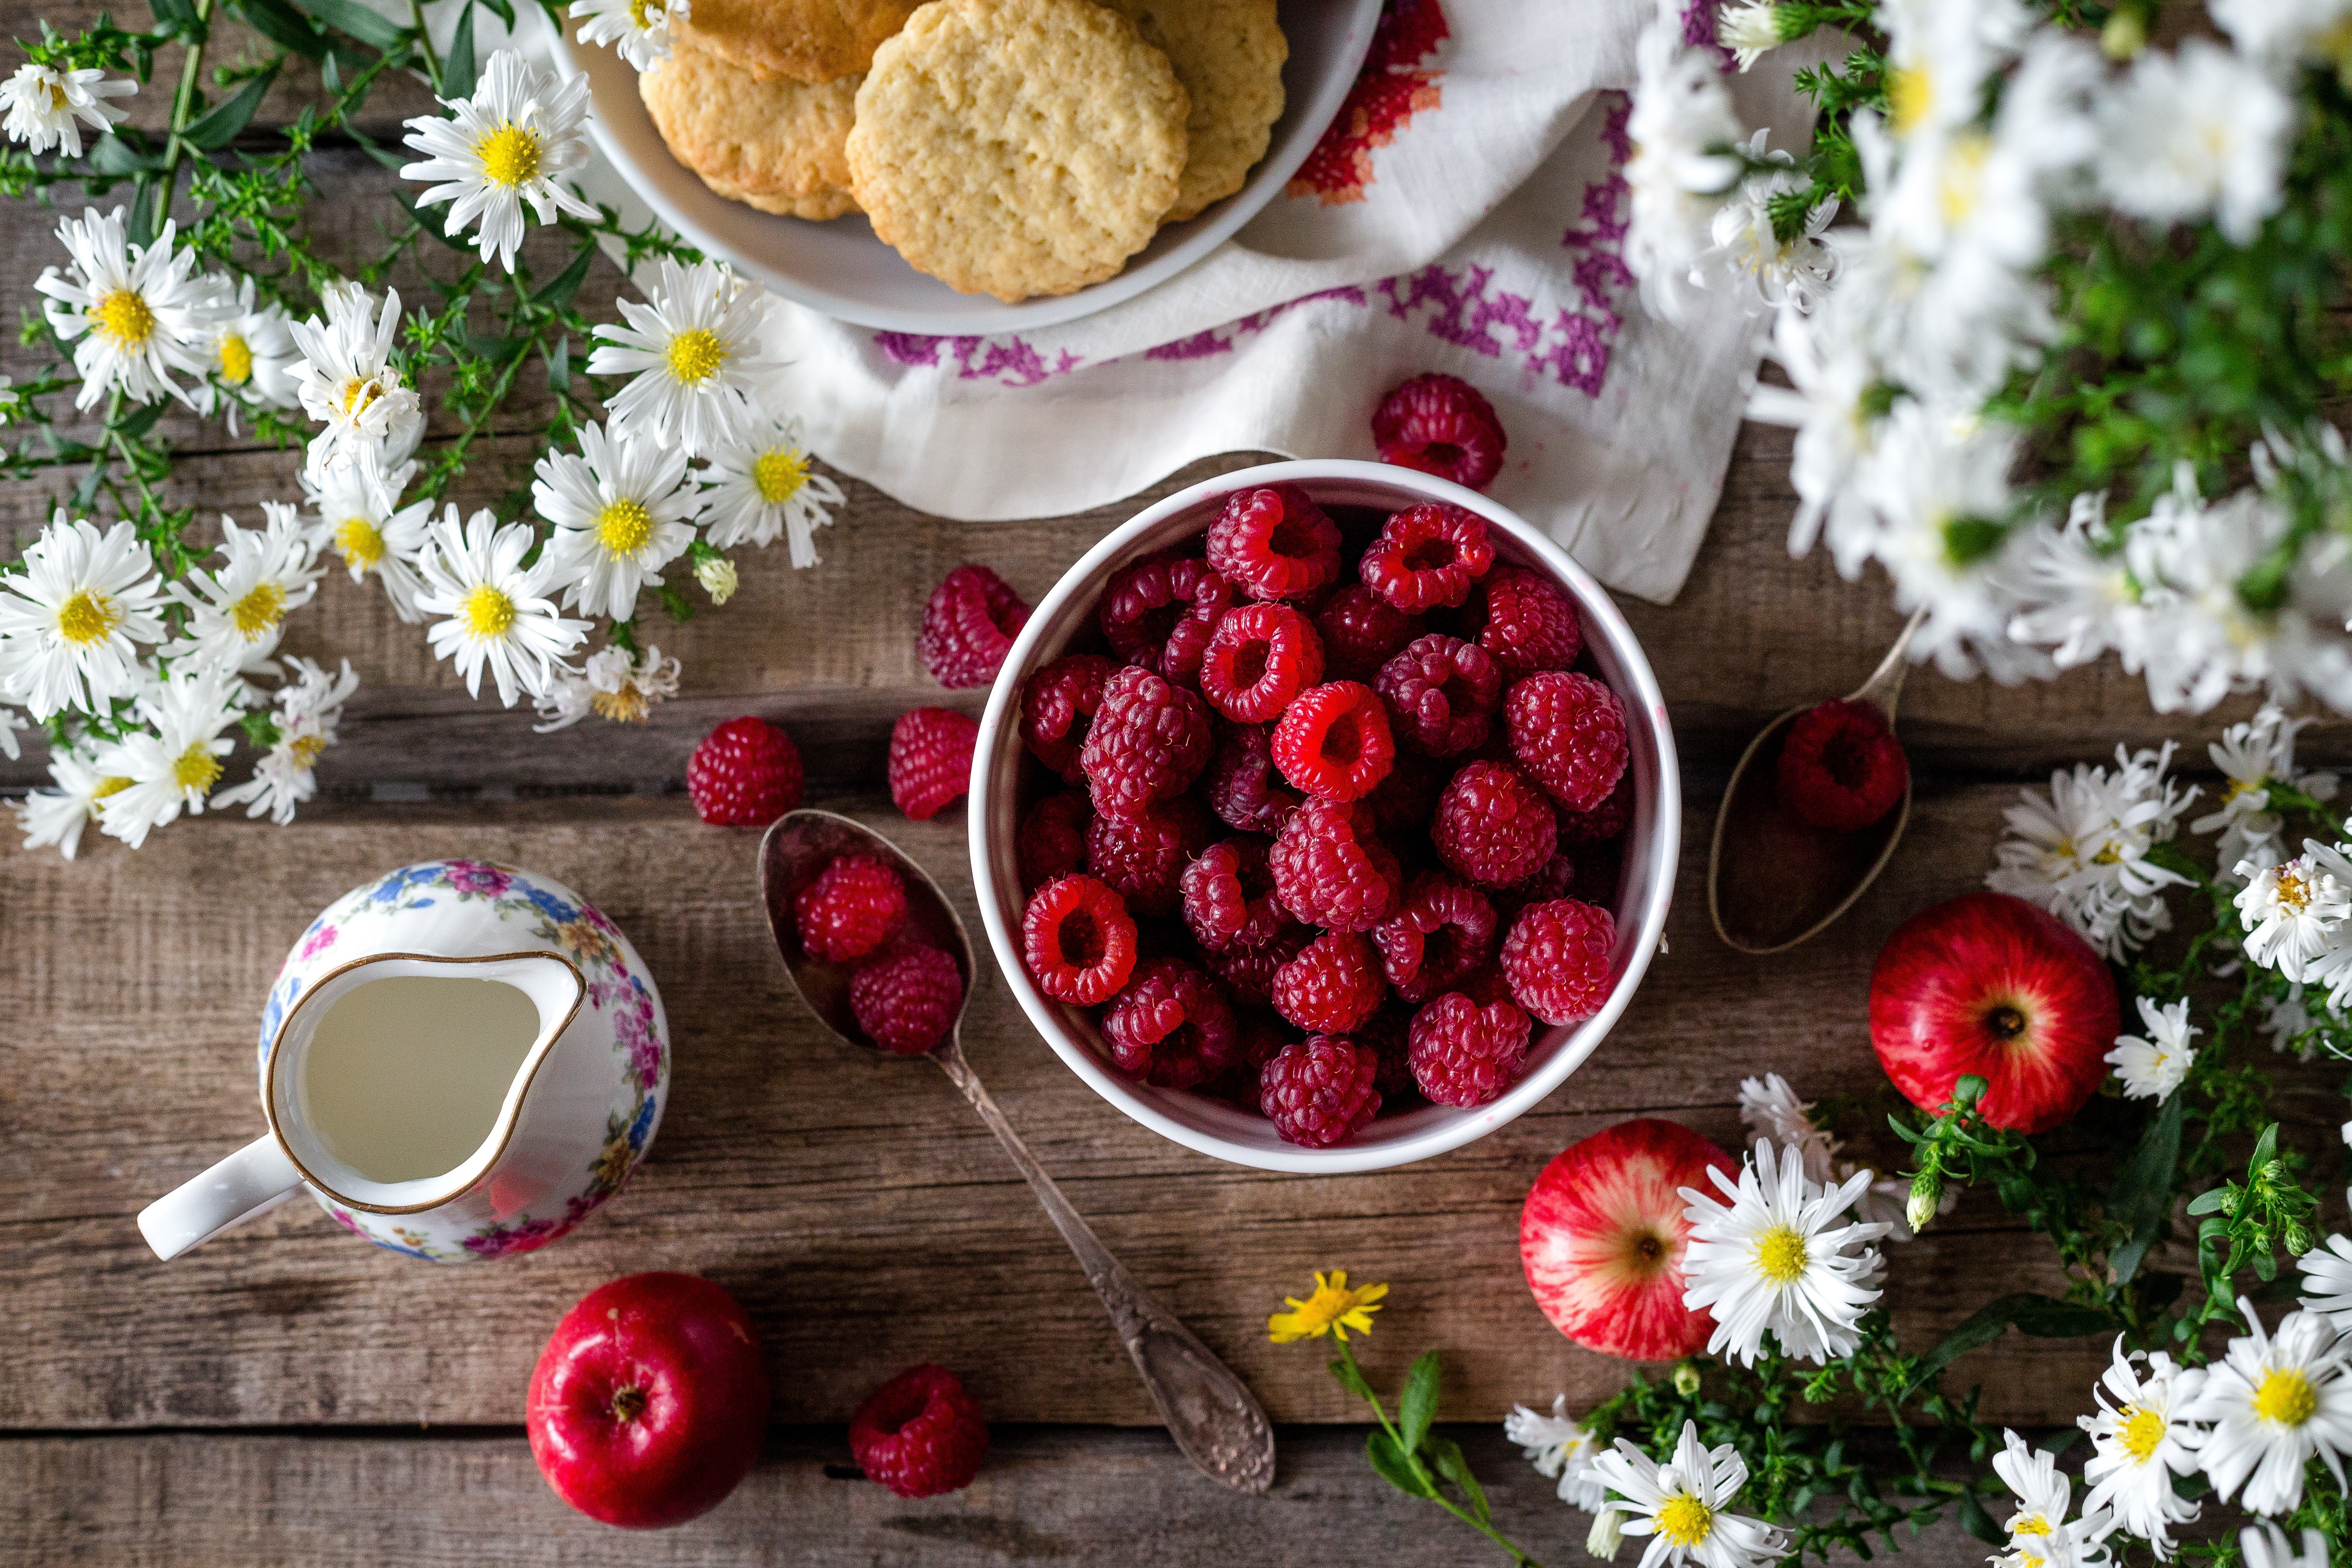 Fruits and Flower on Flowers, Appetizer, Raspberry, Milk, Mood, HQ Photo